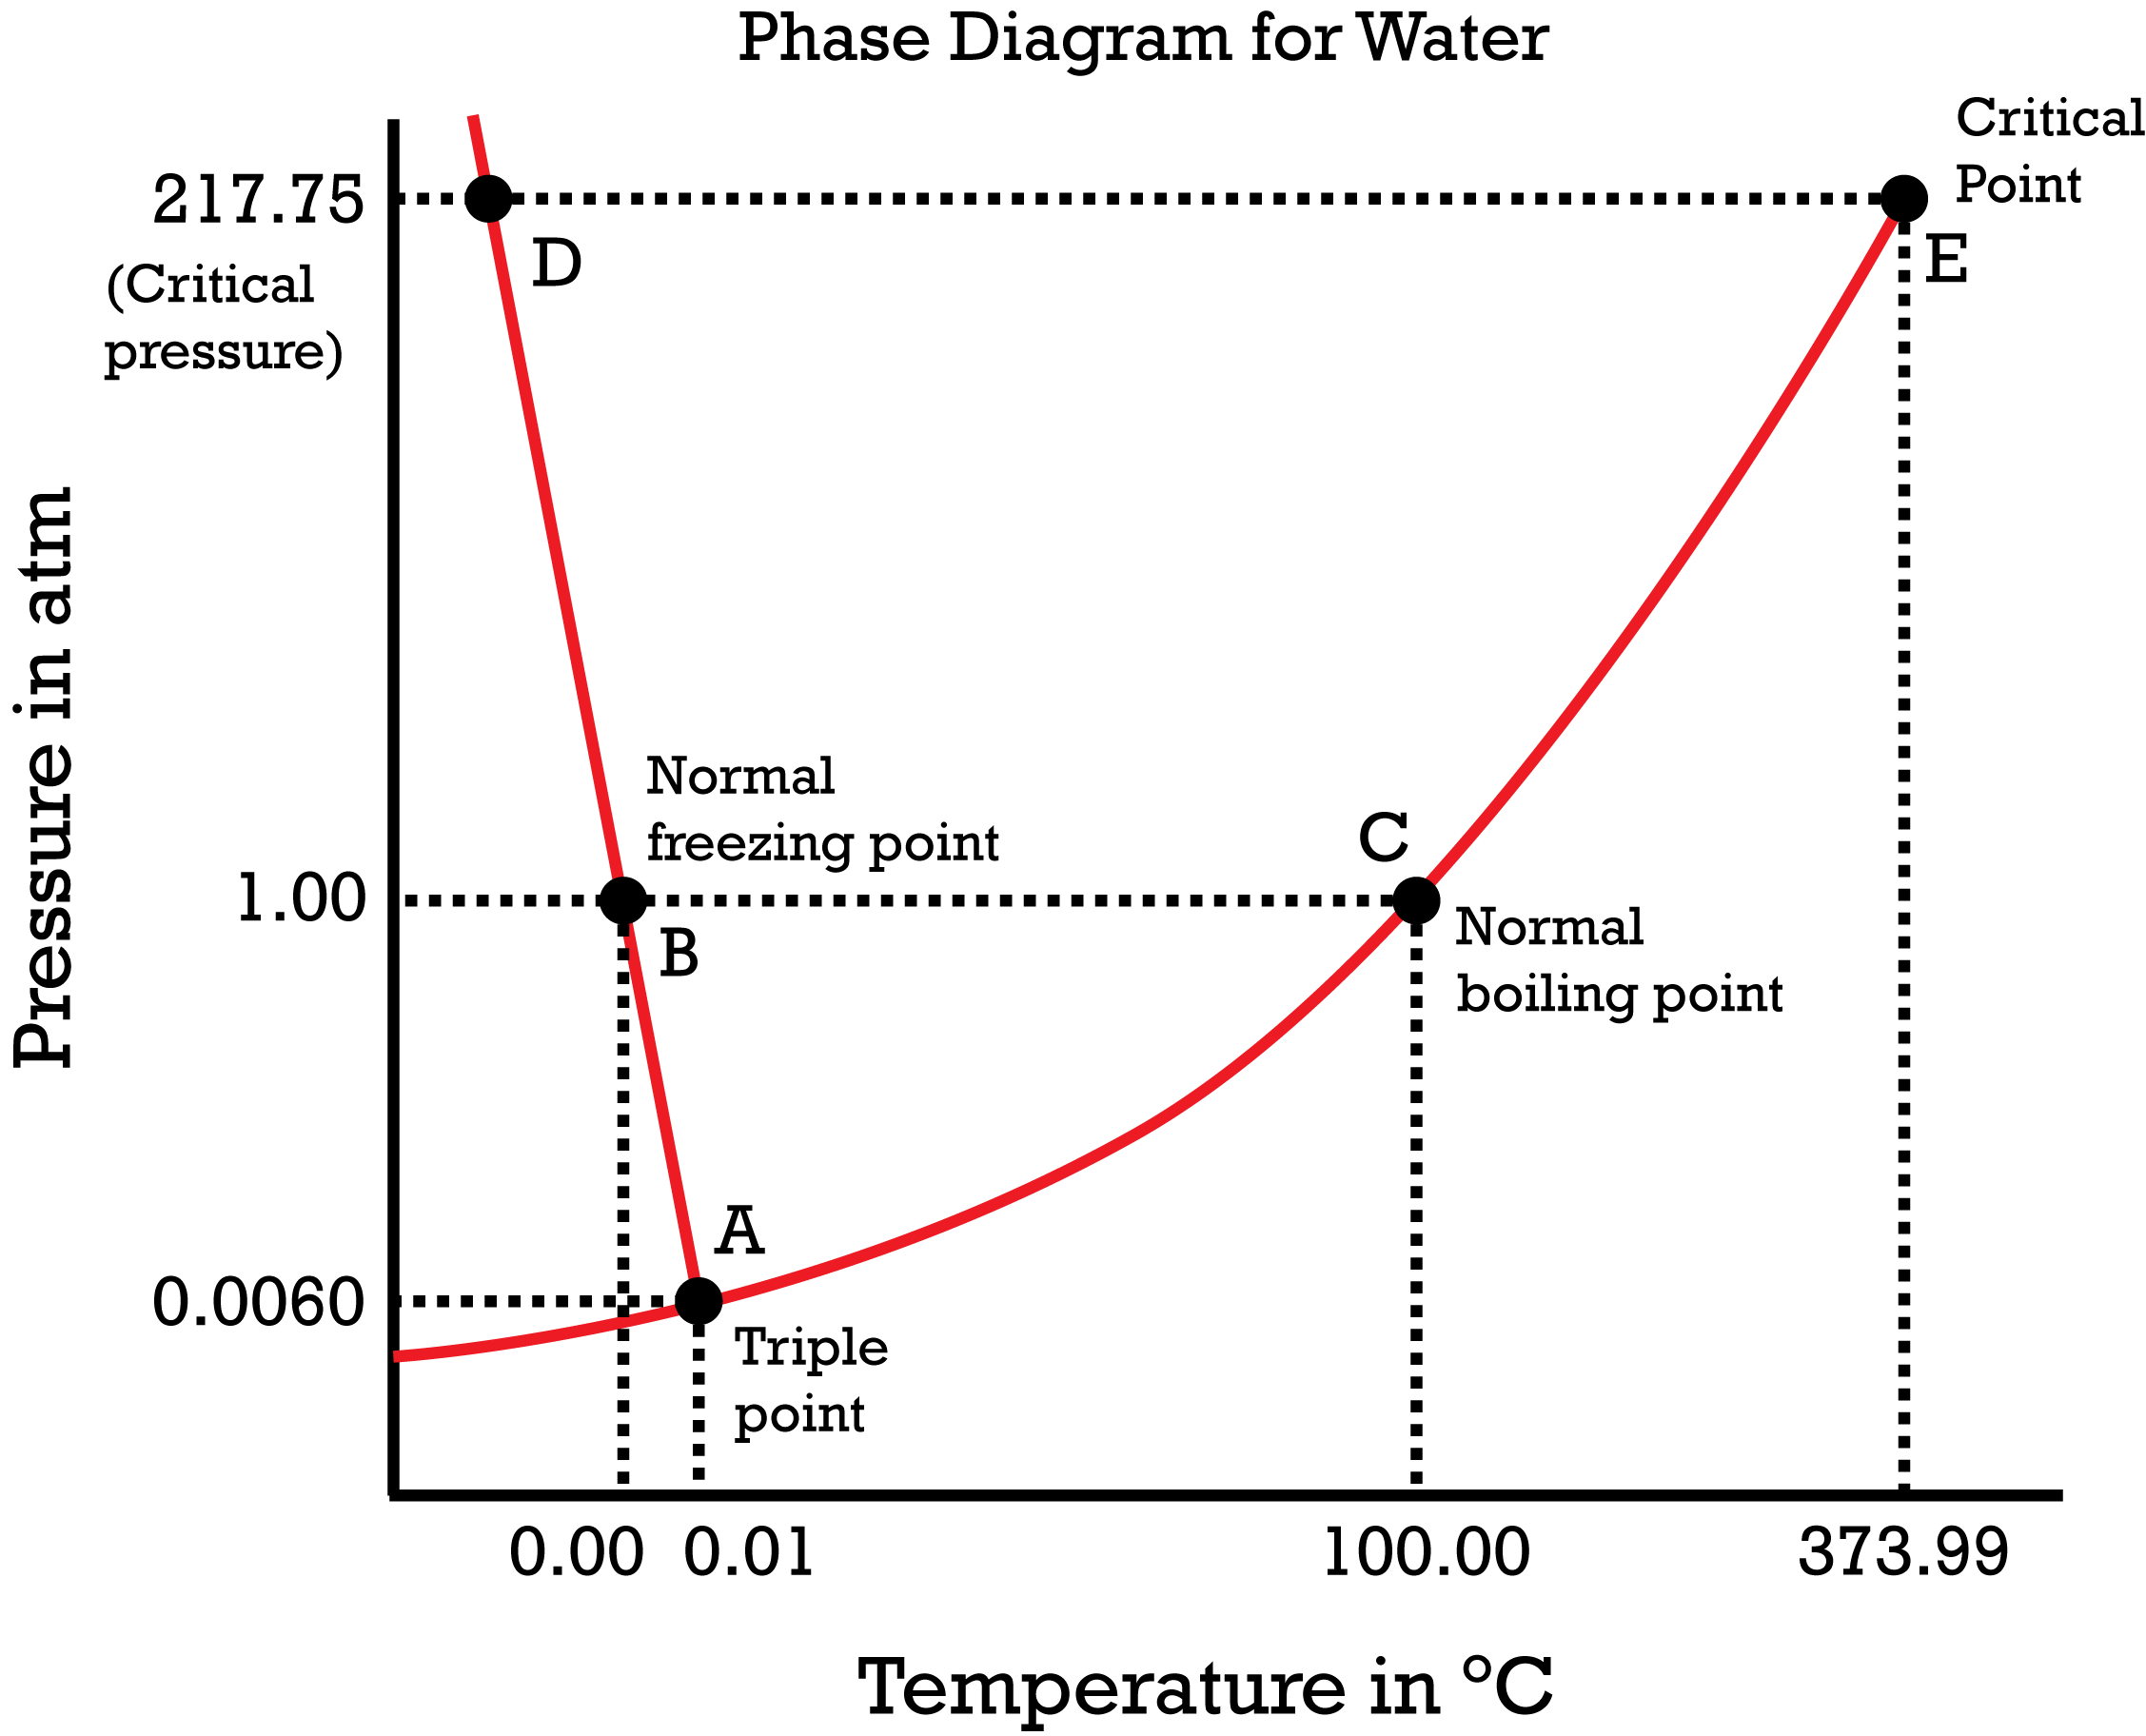 phase change of water diagram xs650 wiring pamco ignition diagrams ck 12 foundation